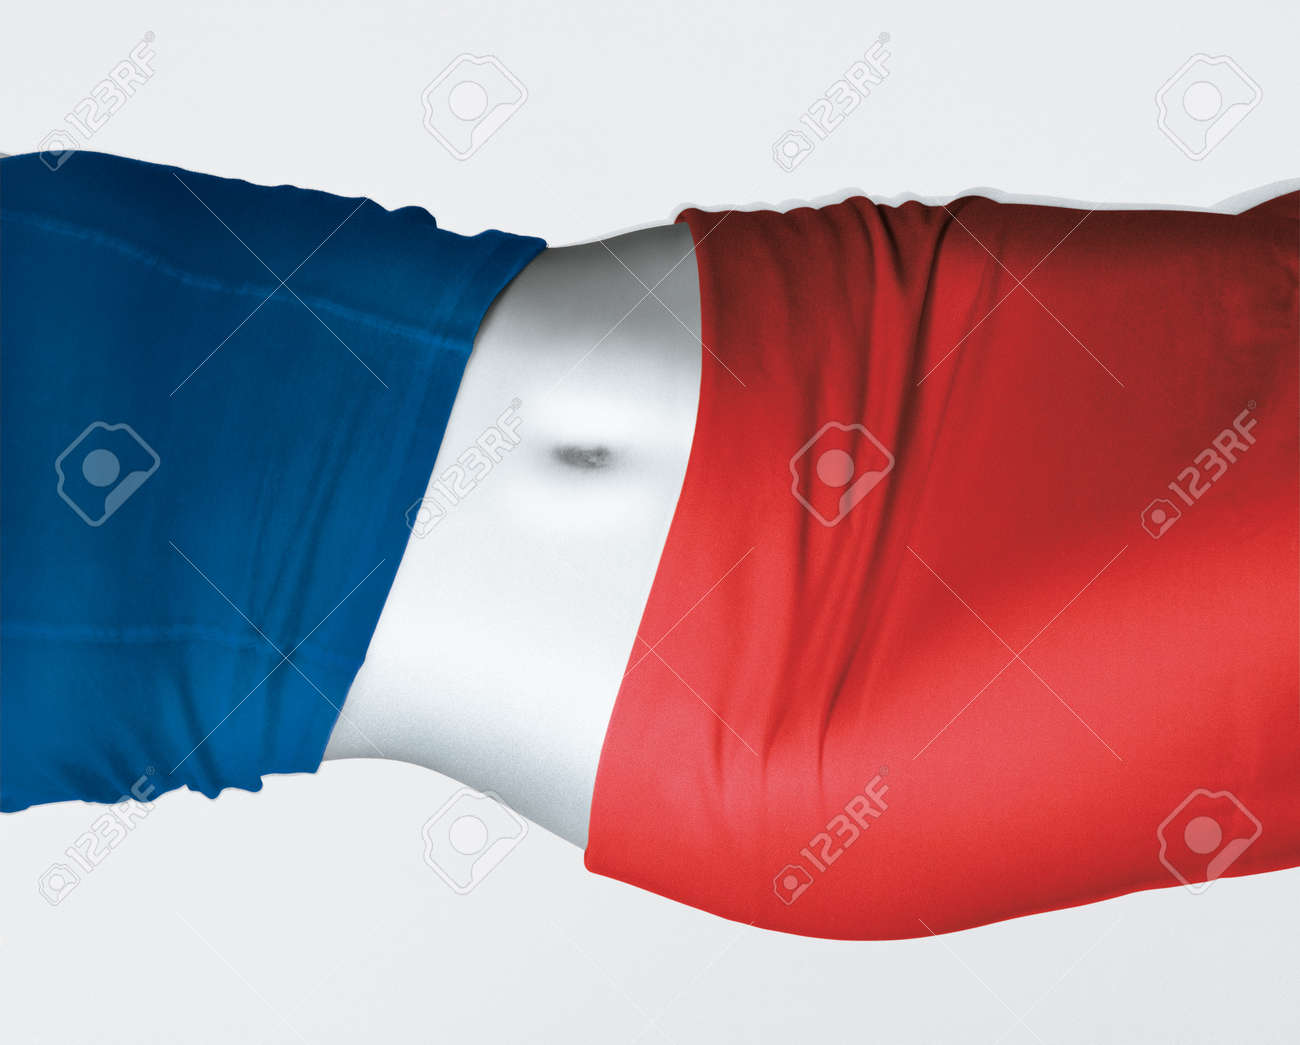 Belly detail with navel of attractive woman with blue shirt and red skirt, represents the flags of France. Studio portrait on white background - 170379922